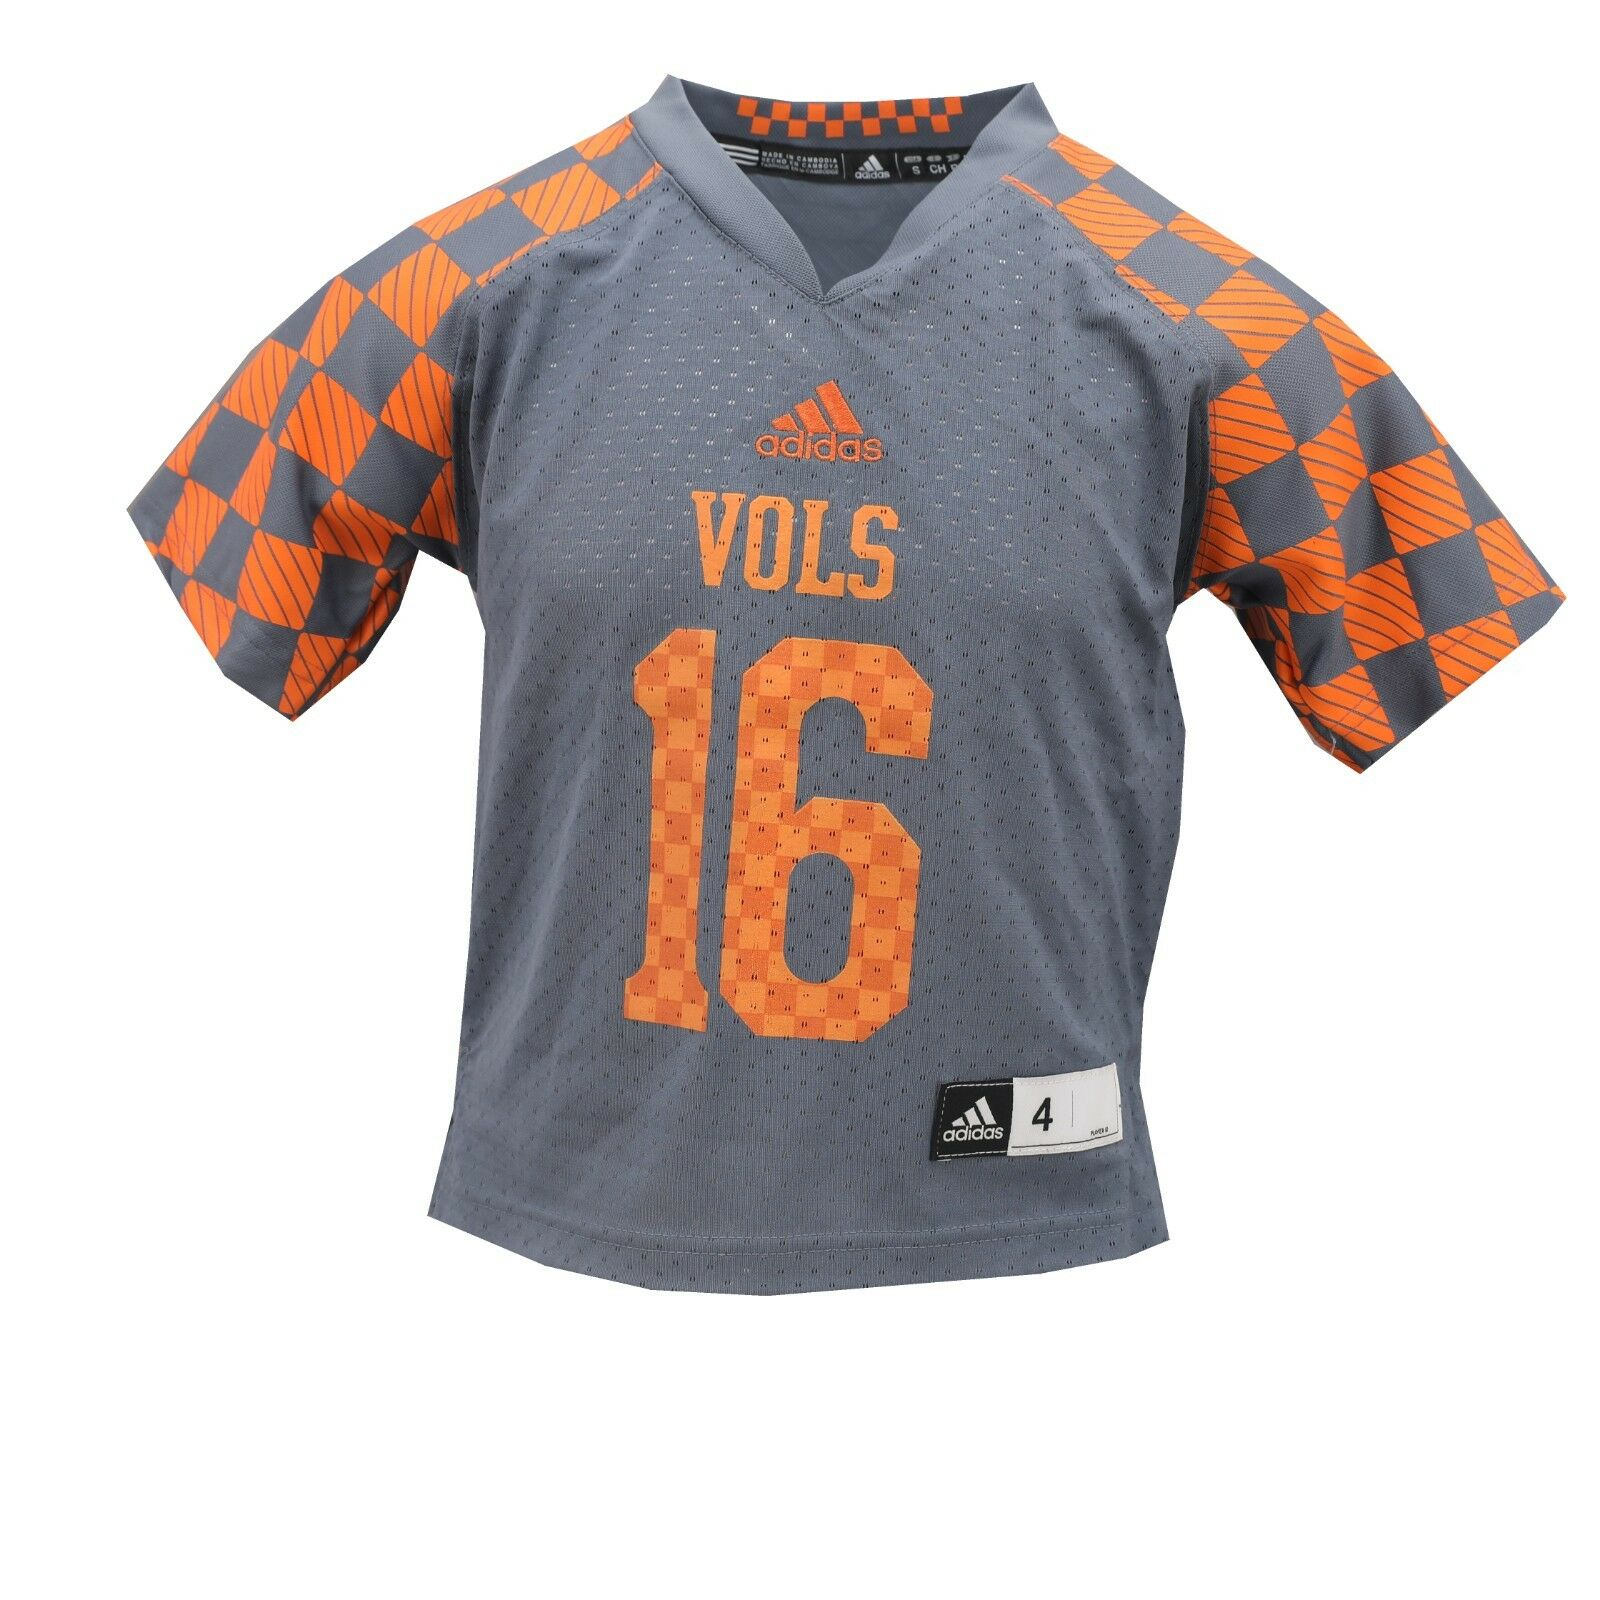 outlet store de61e 41689 Details about Tennessee Volunteers Official NCAA Adidas Kids & Youth Size  Football Jersey New